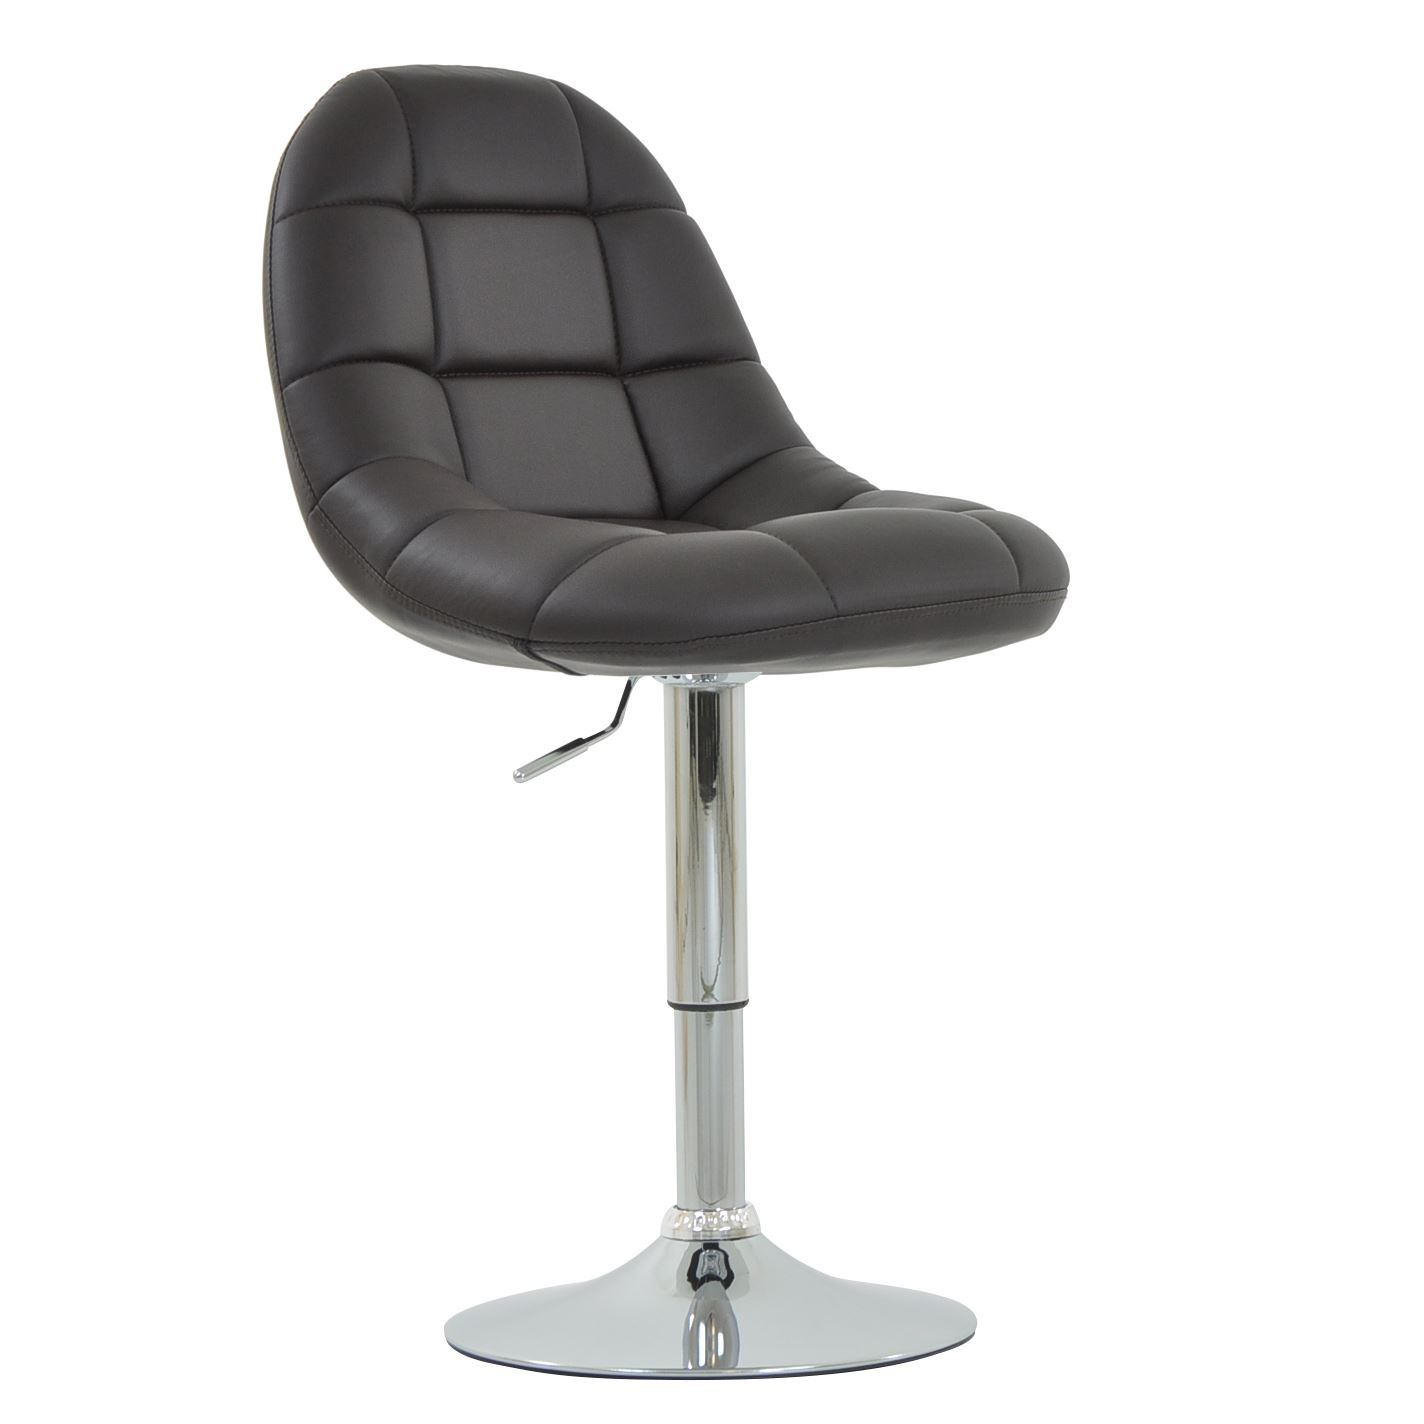 Montrose Faux Leather Padded Swivel Office Dining Chair Ebay